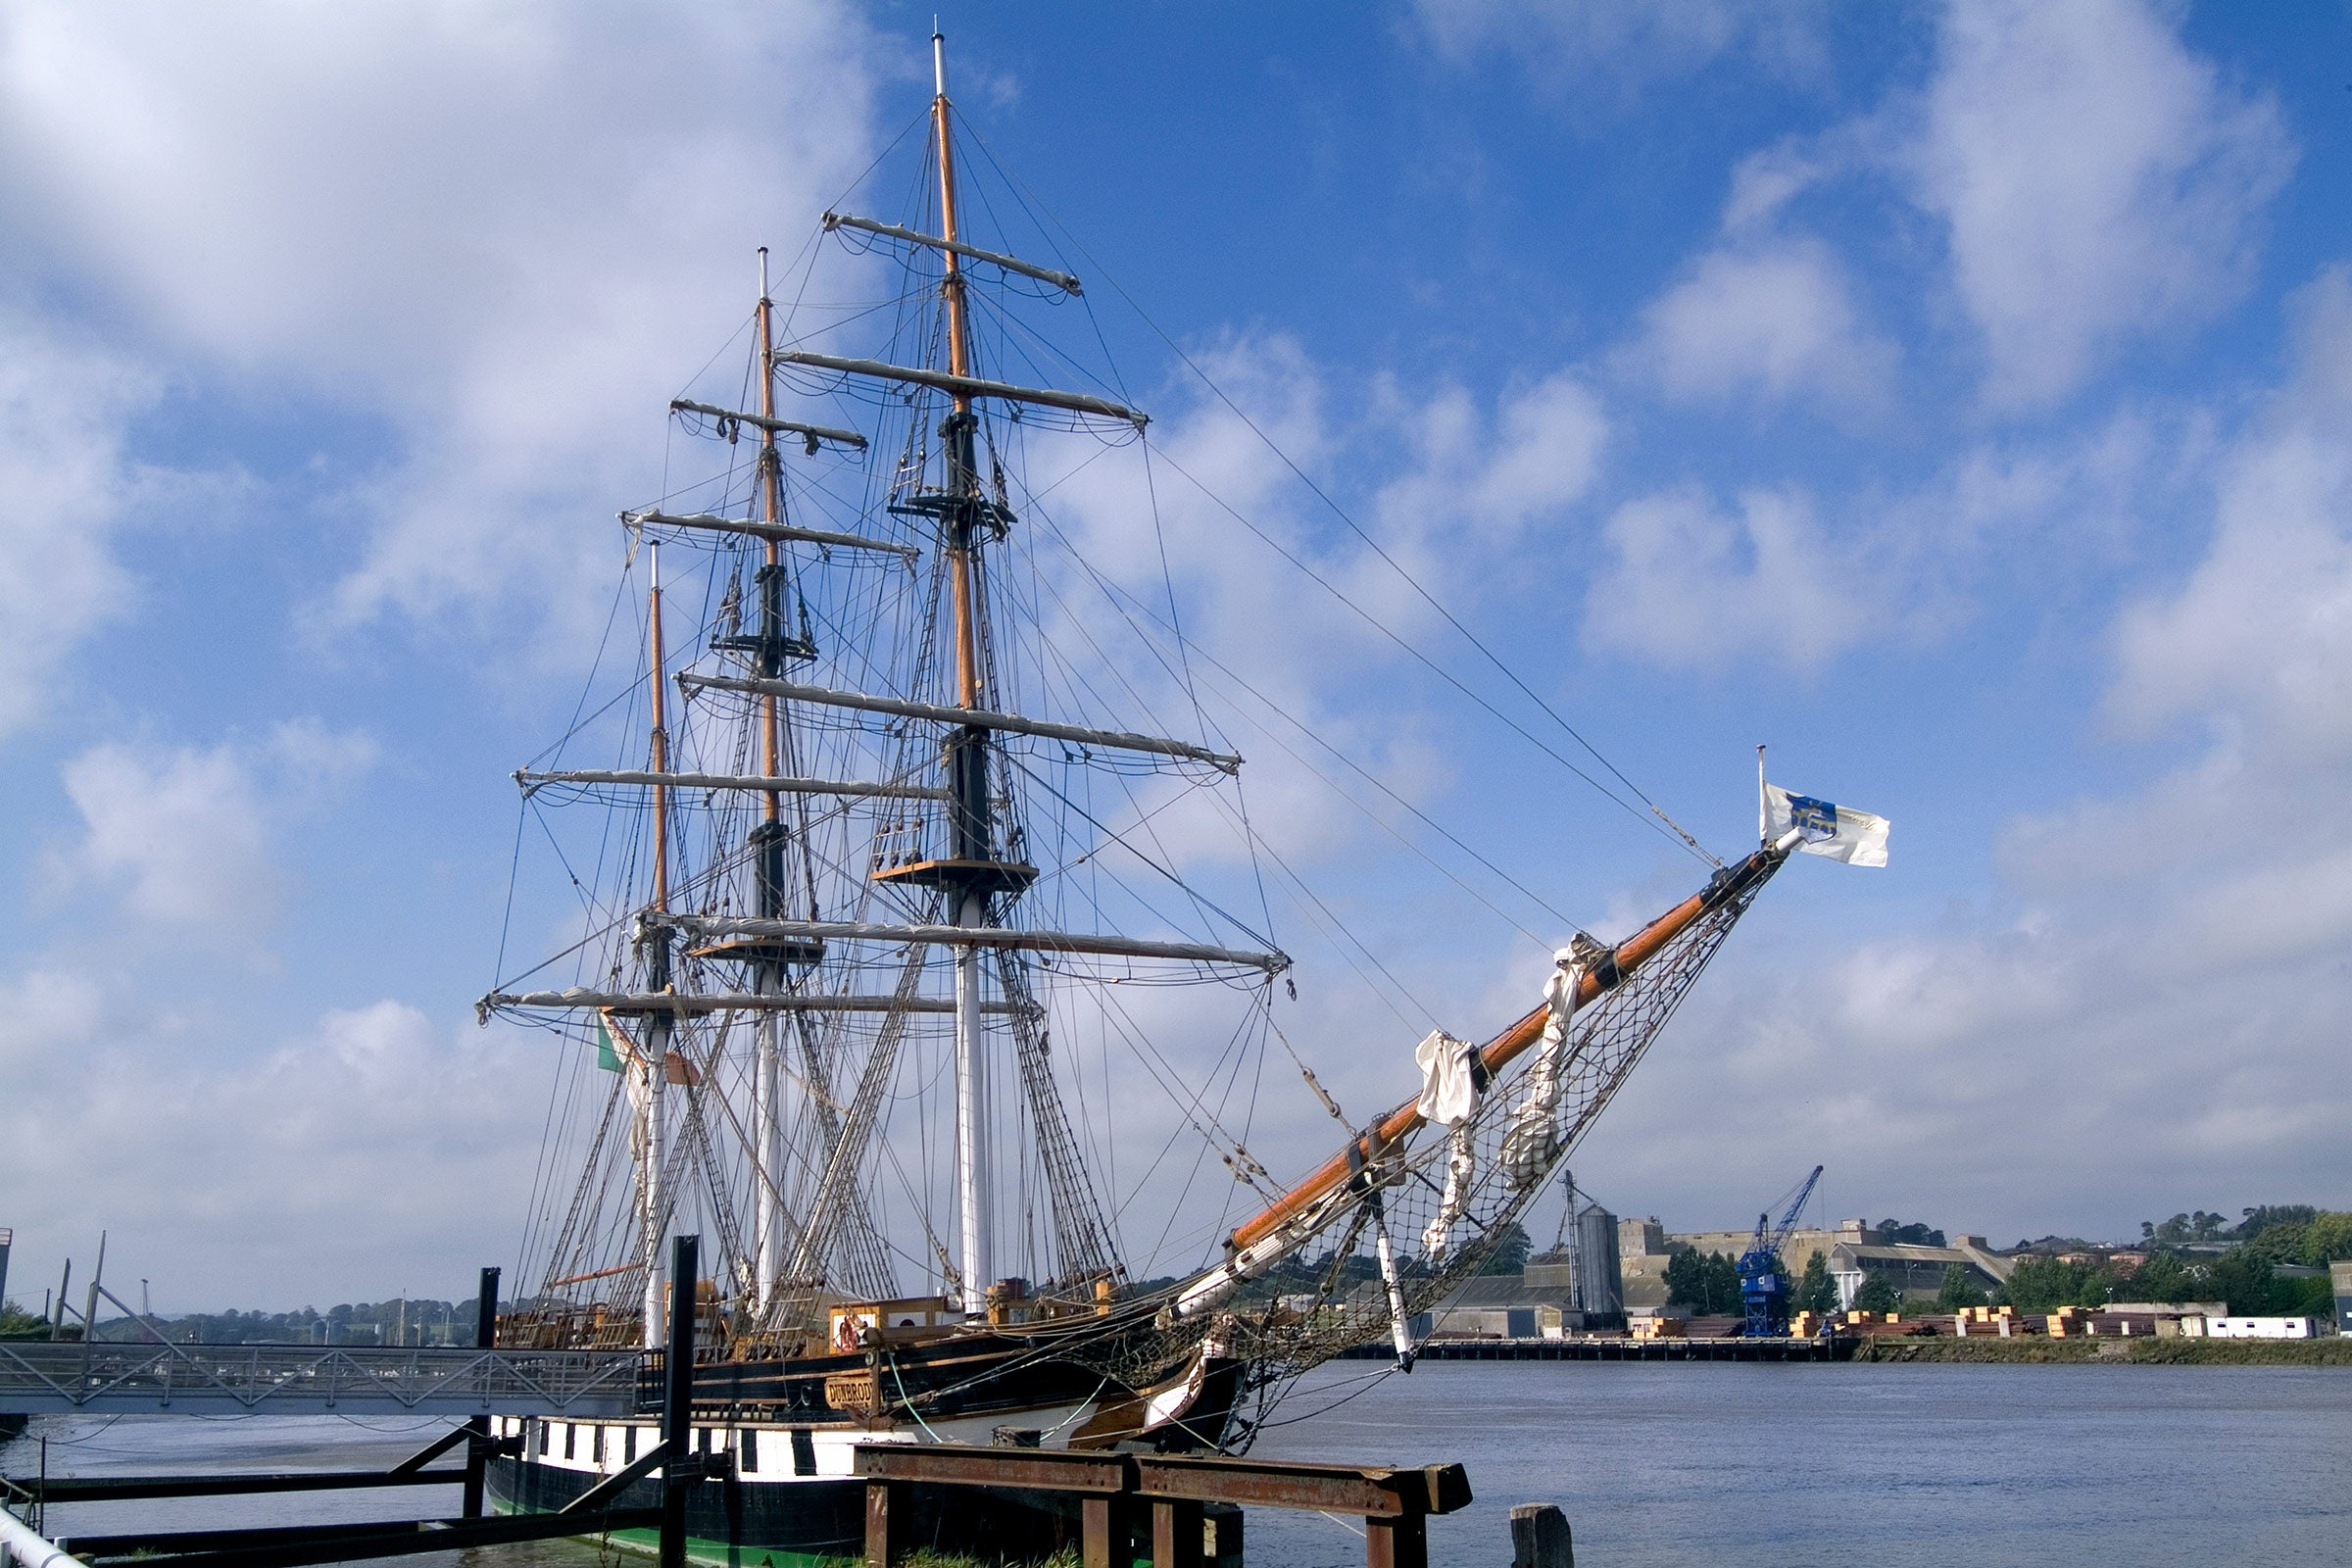 Dunbrody Famine Ship docked at a port in Wexford